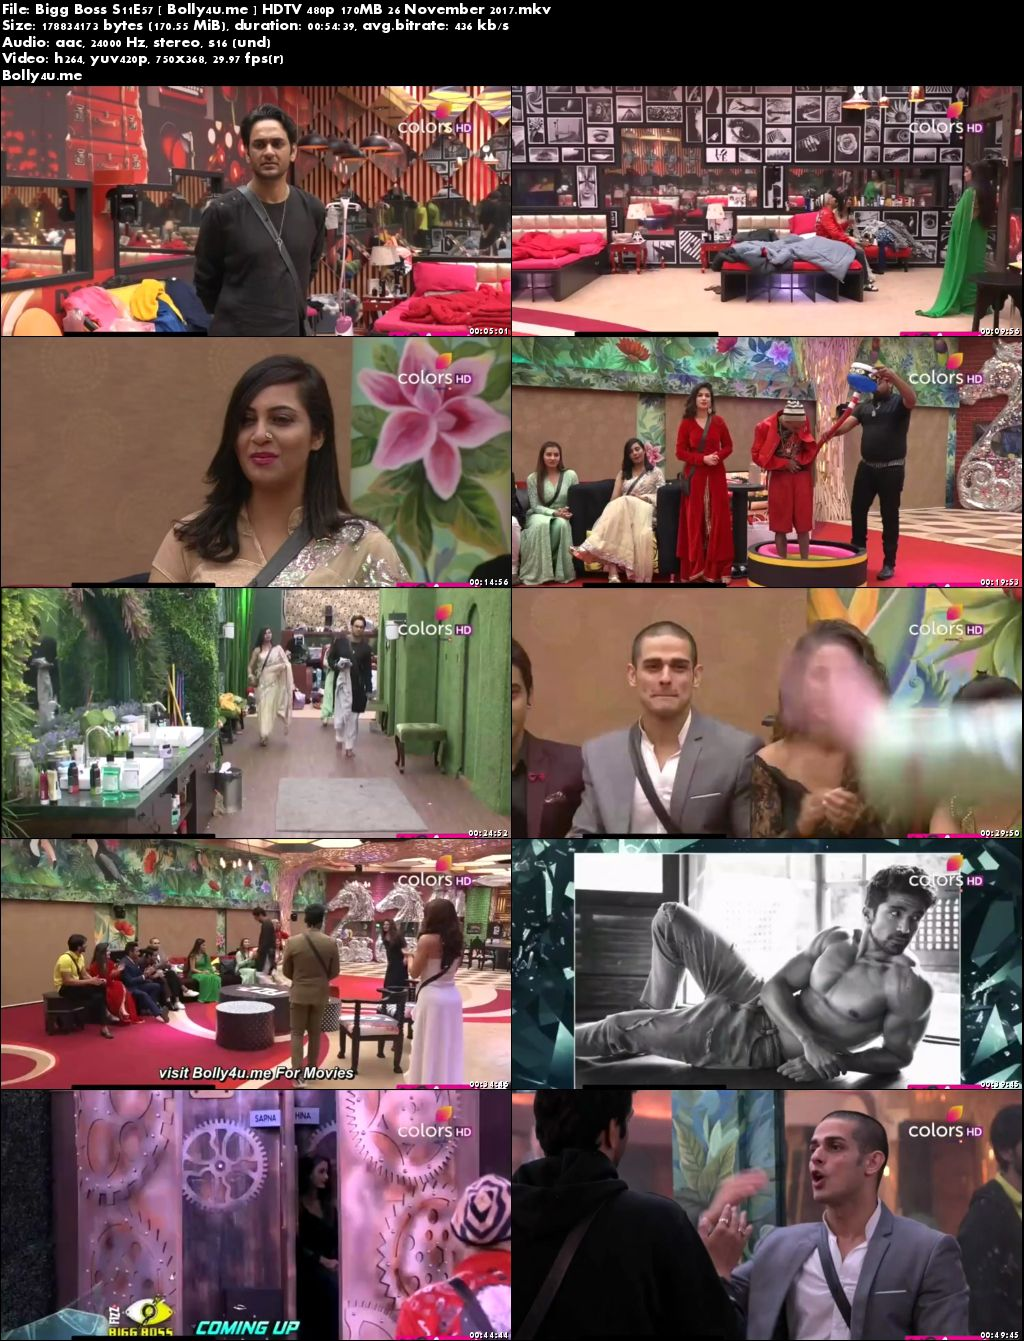 Bigg Boss S11E57 HDTV 480p 150MB 26 November 2017 Download